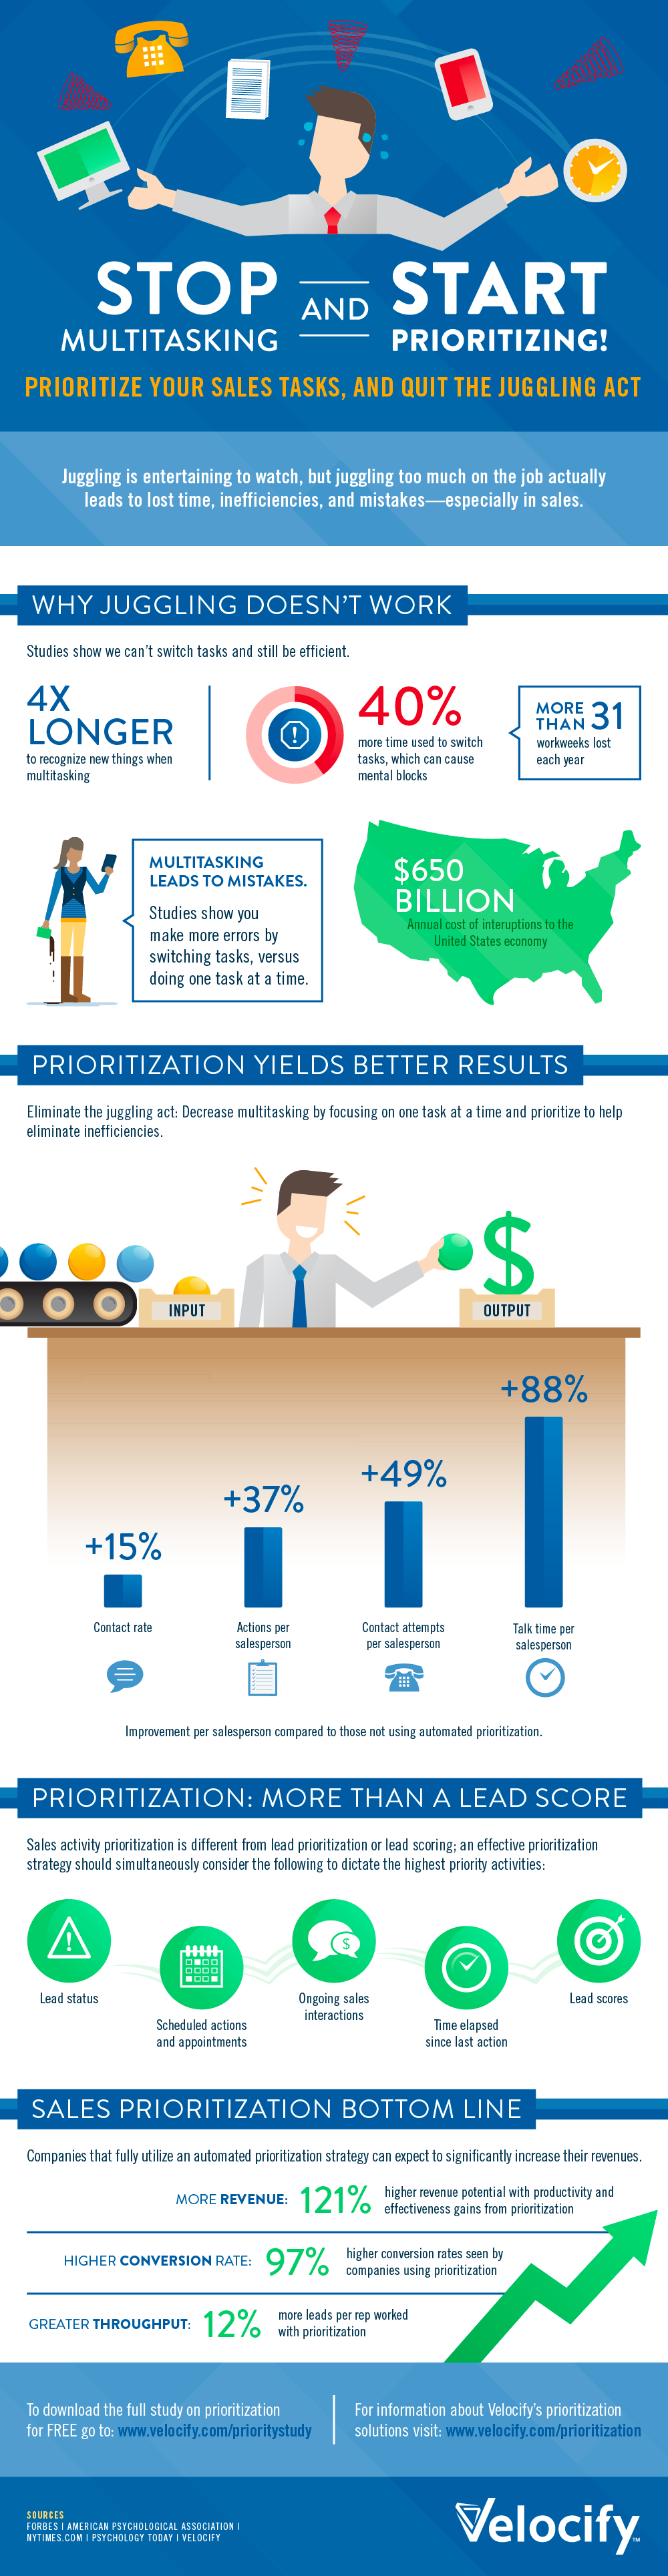 why multitasking hurts s infographic inc com the infographic below from velocify demonstrates how prioritizing tasks leads to better s performance